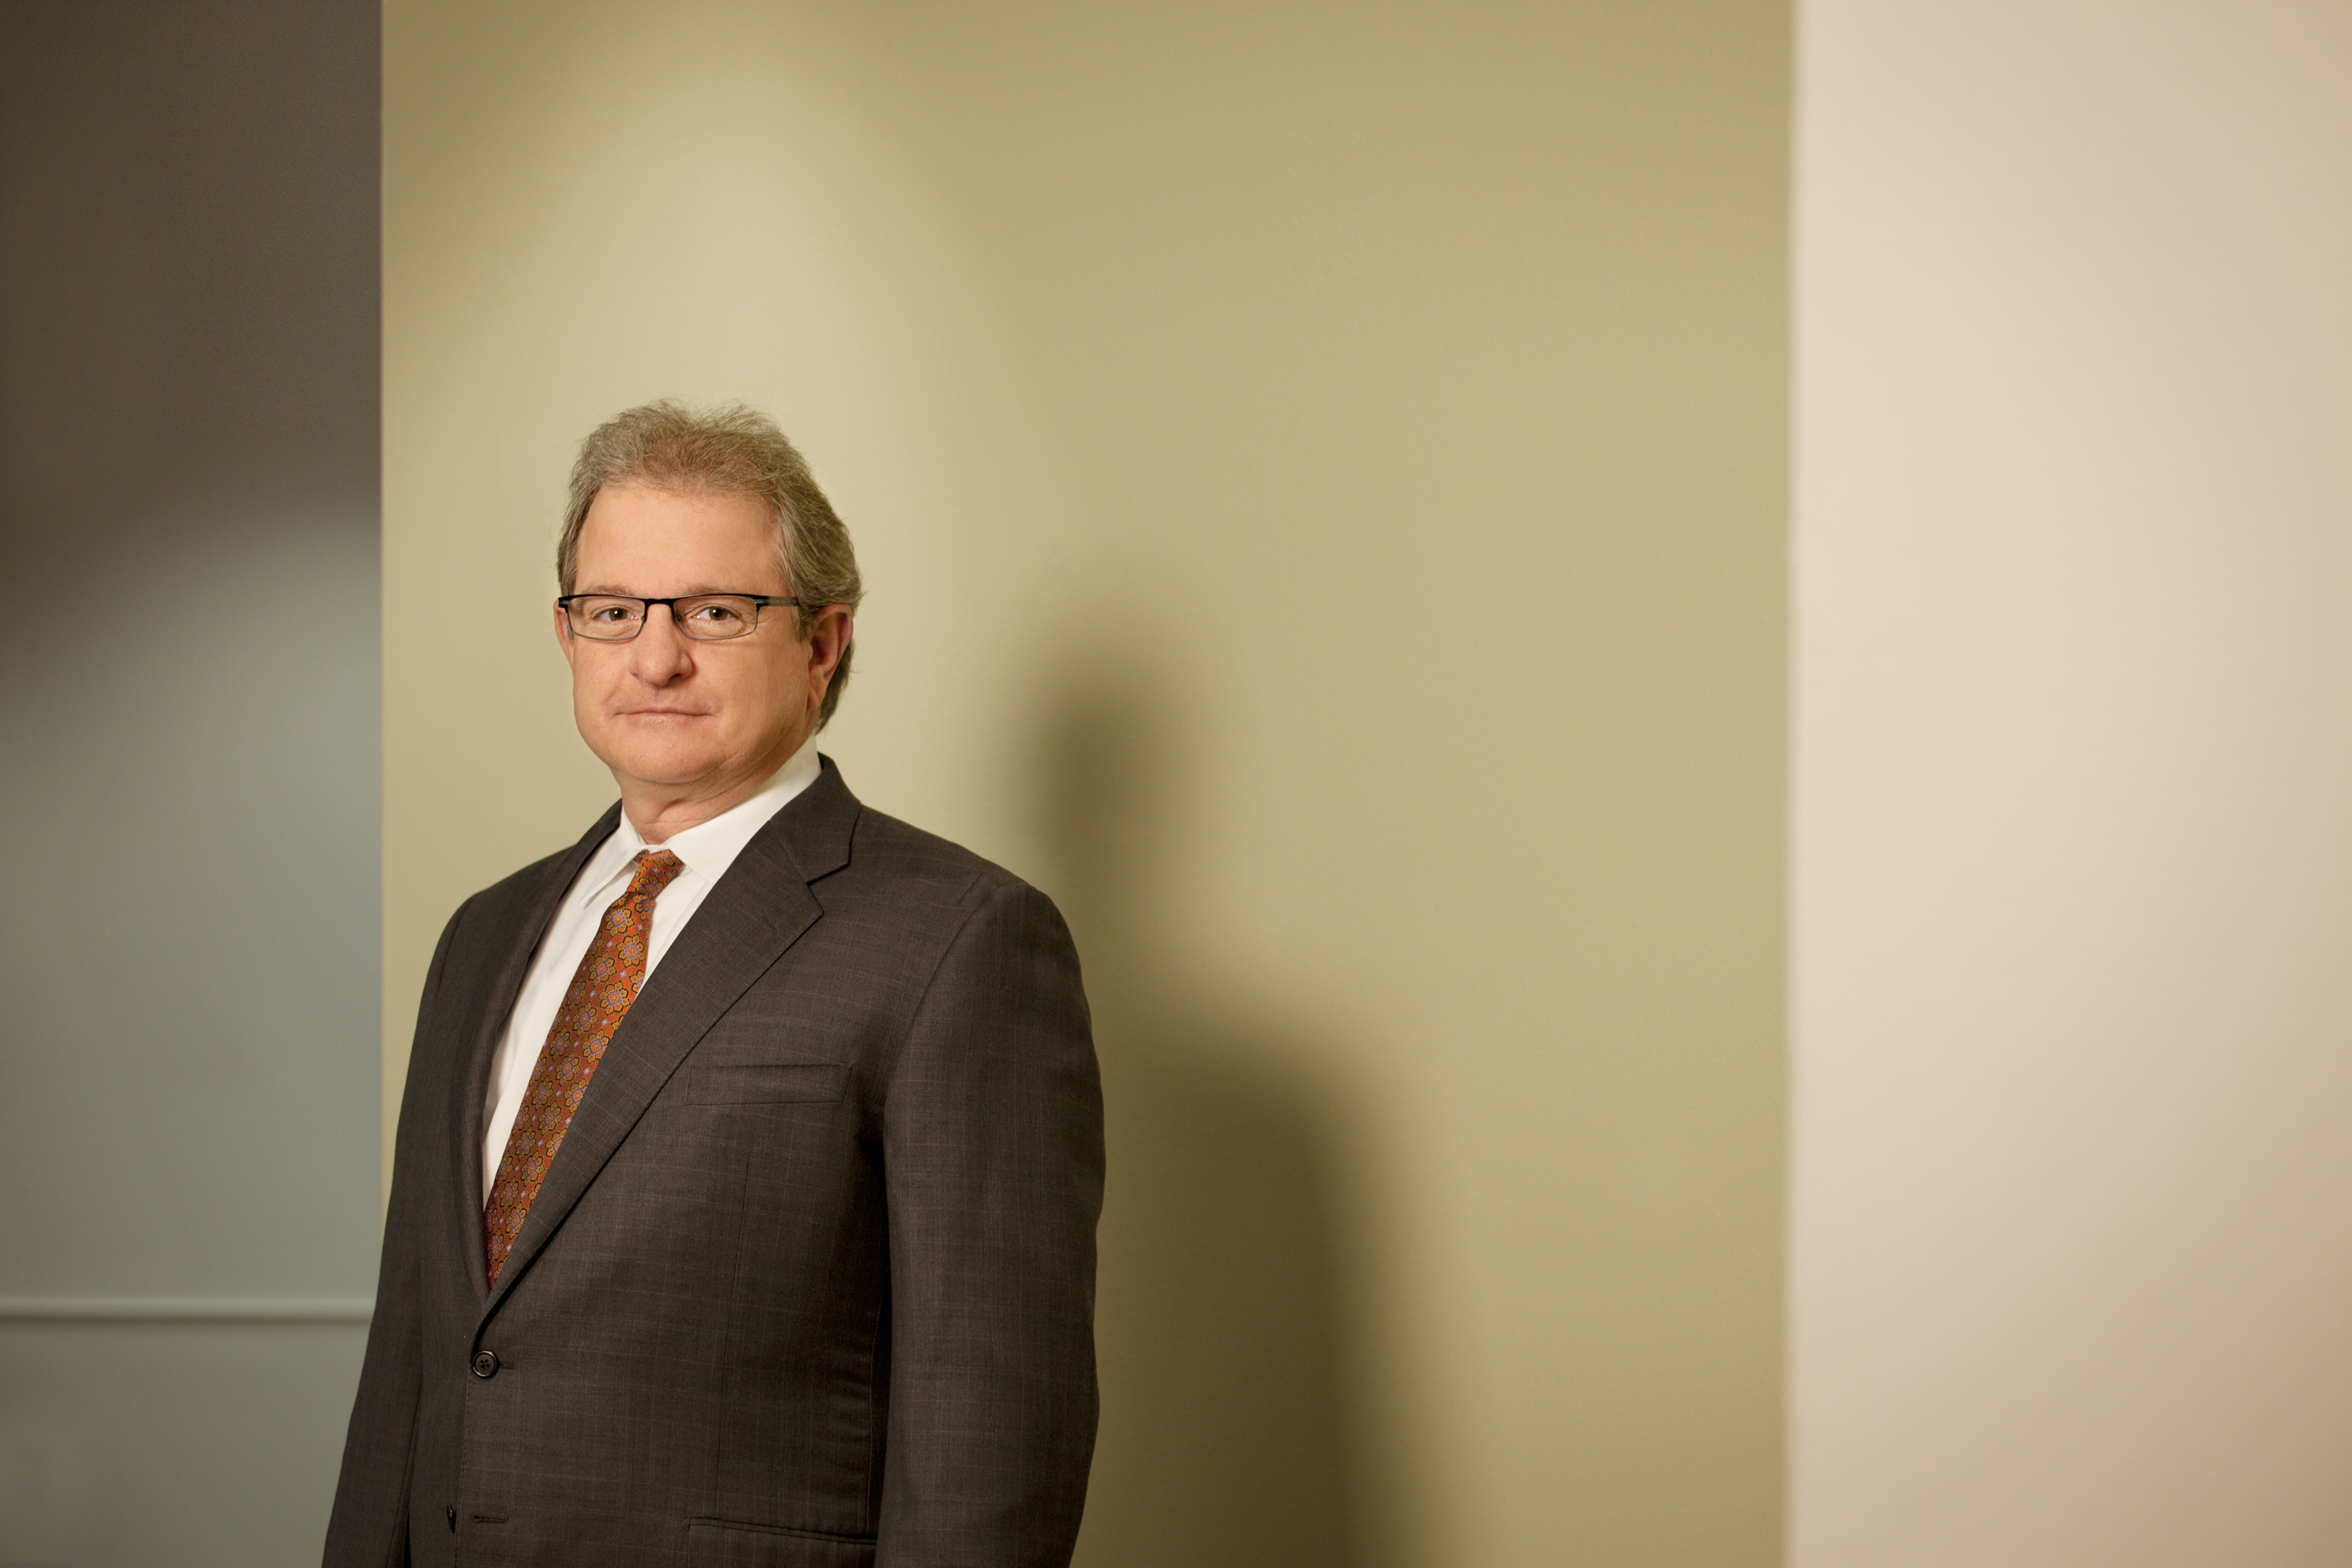 J. Ross Craft, Director, President and Chief Executive Officer of Approach Resources Inc. (Photo: Business Wire)